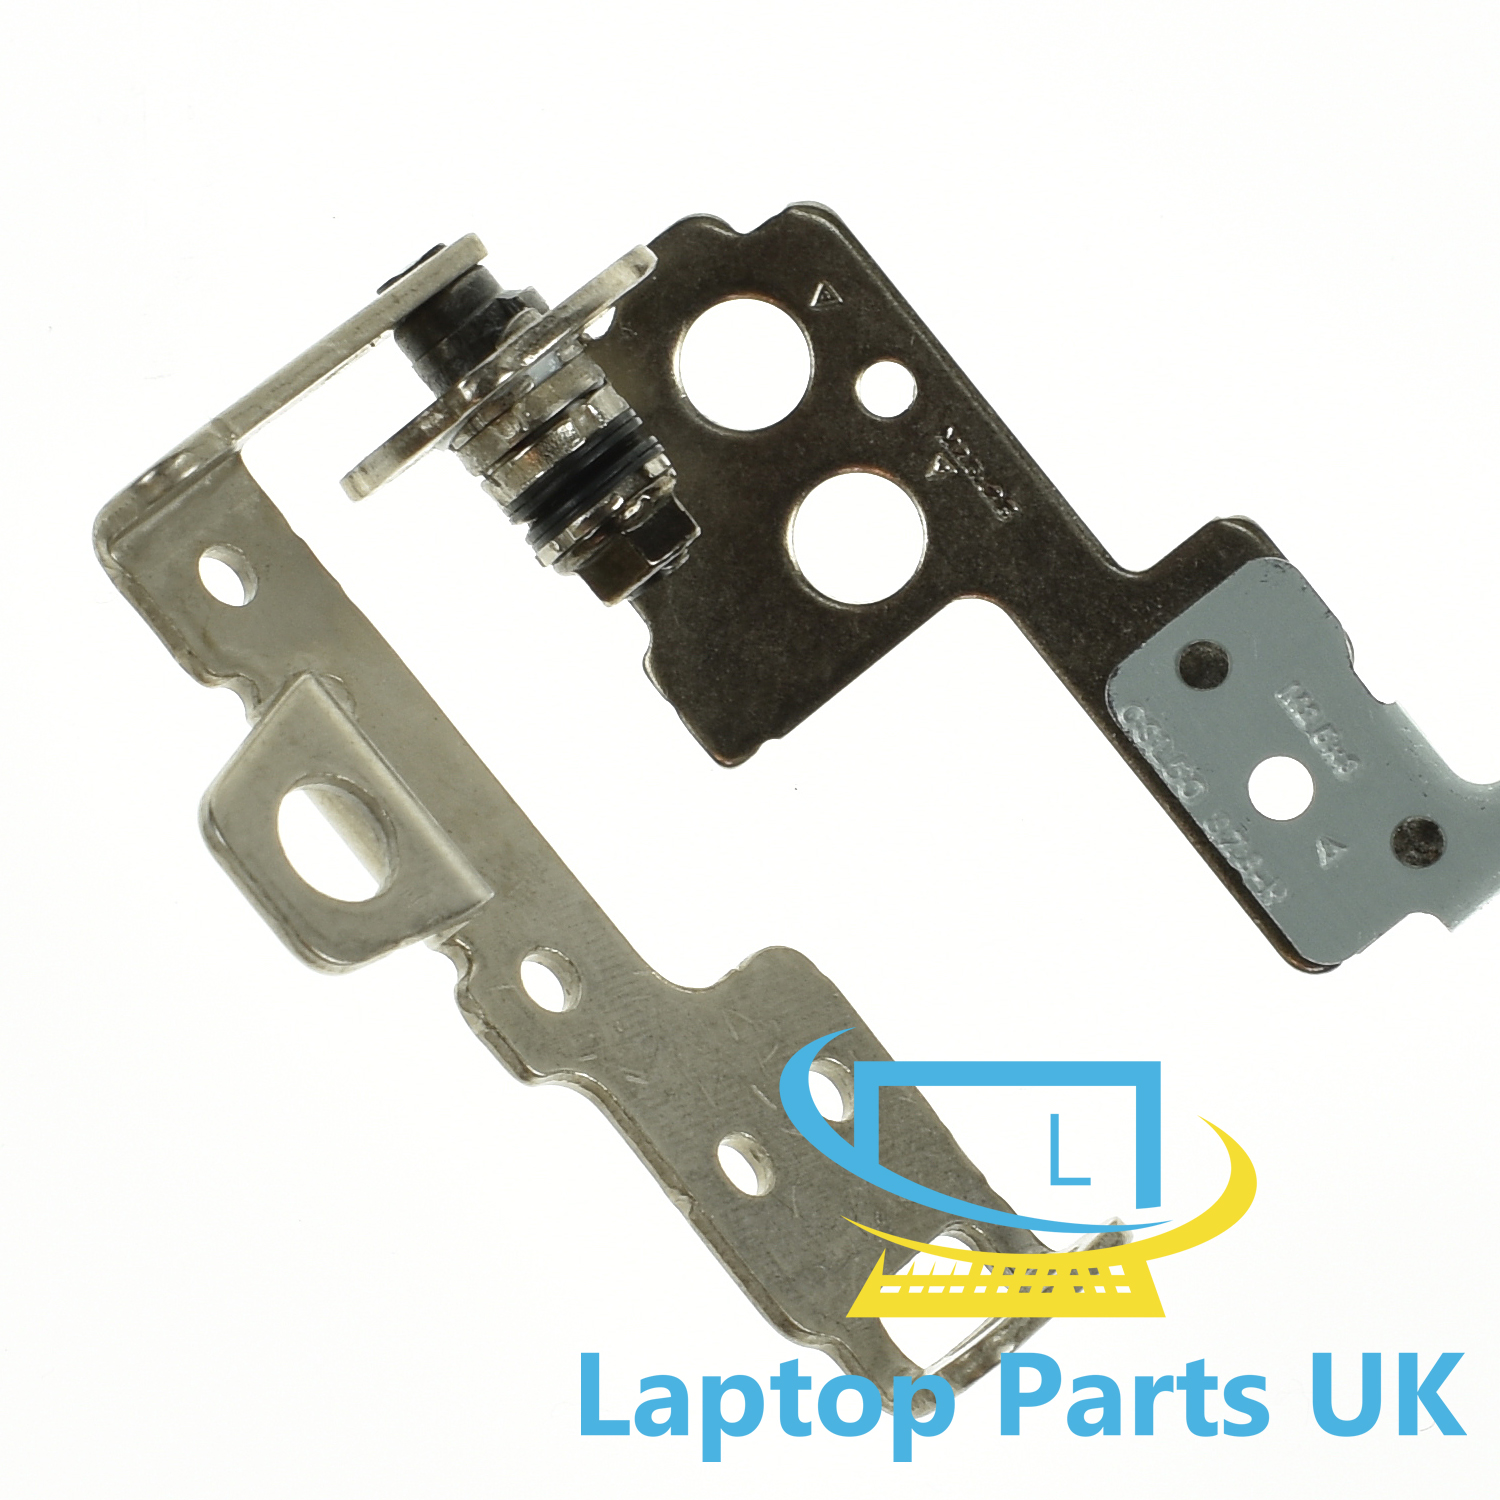 Screen-Hinges-Hp-255-G6-LED-LCD-Display-Brackets-Left-Right-Set thumbnail 2